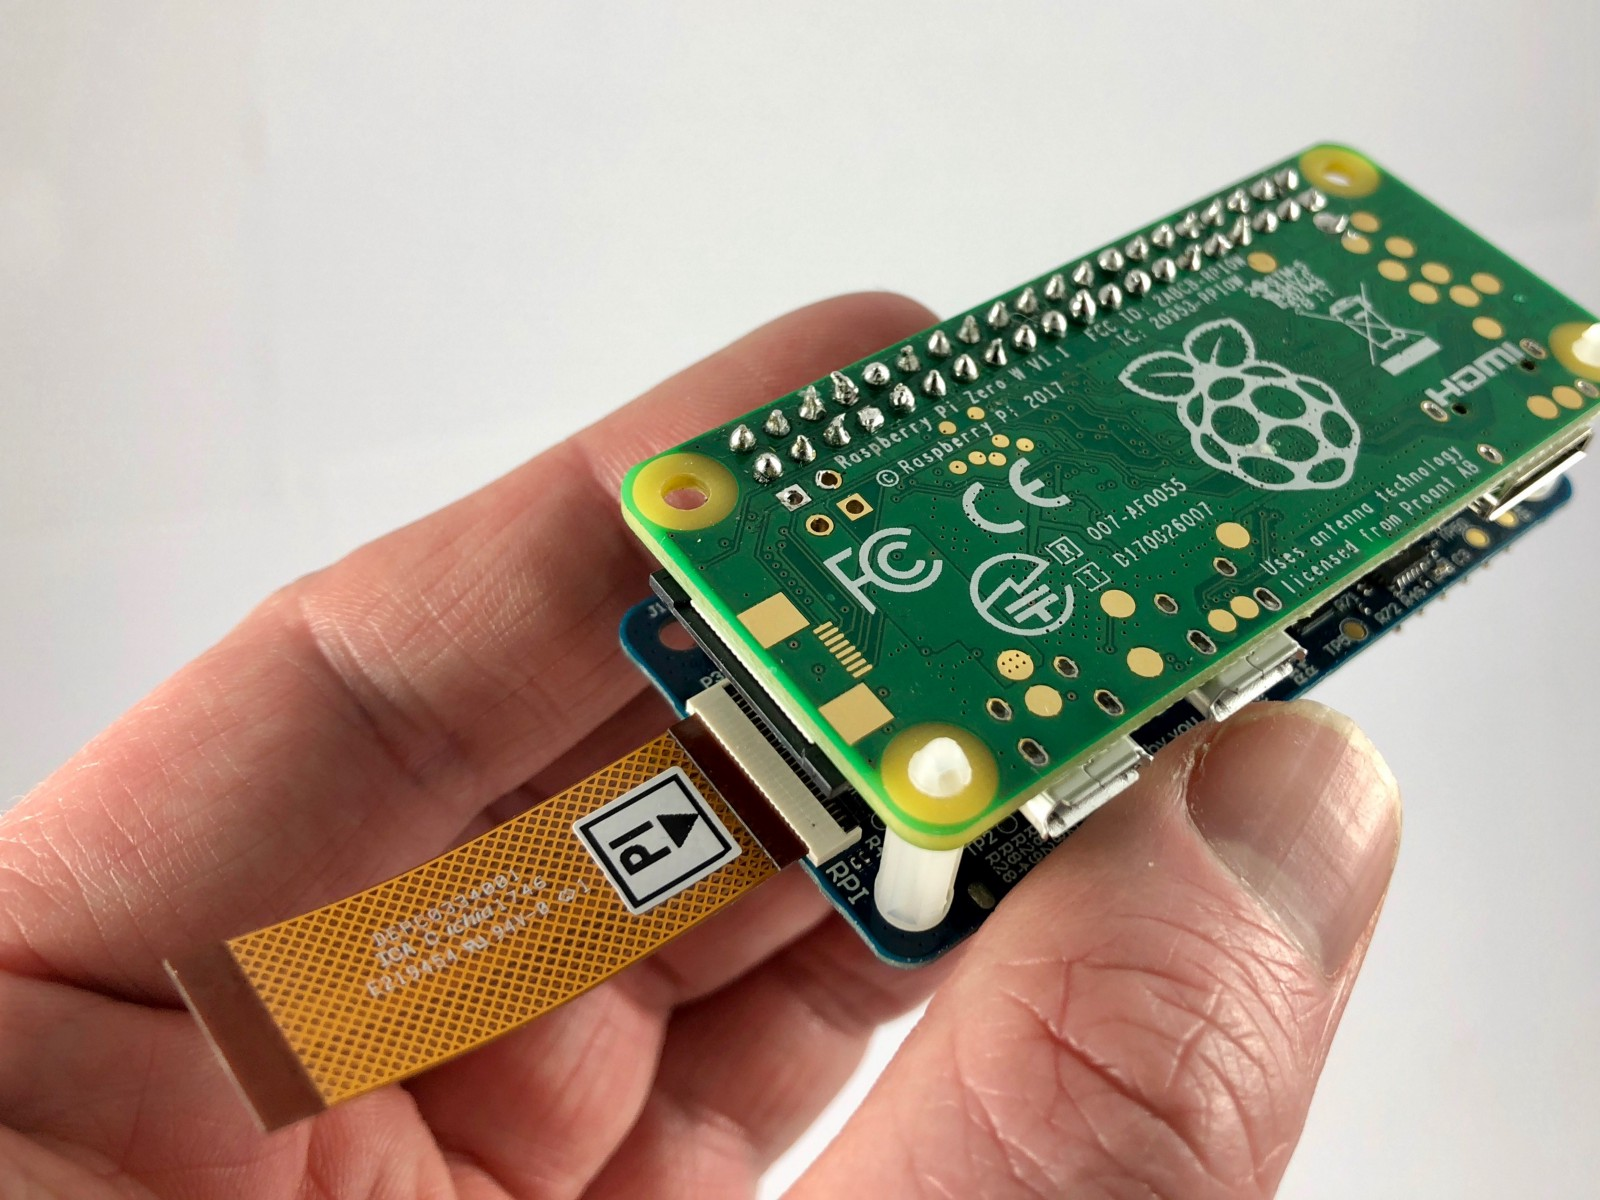 Hands On With The Aiy Projects Vision Kit Alasdair Allan Medium 1000 Circuit Board Stickers And Sticker Designs Youre Probably Going To Have Ignore